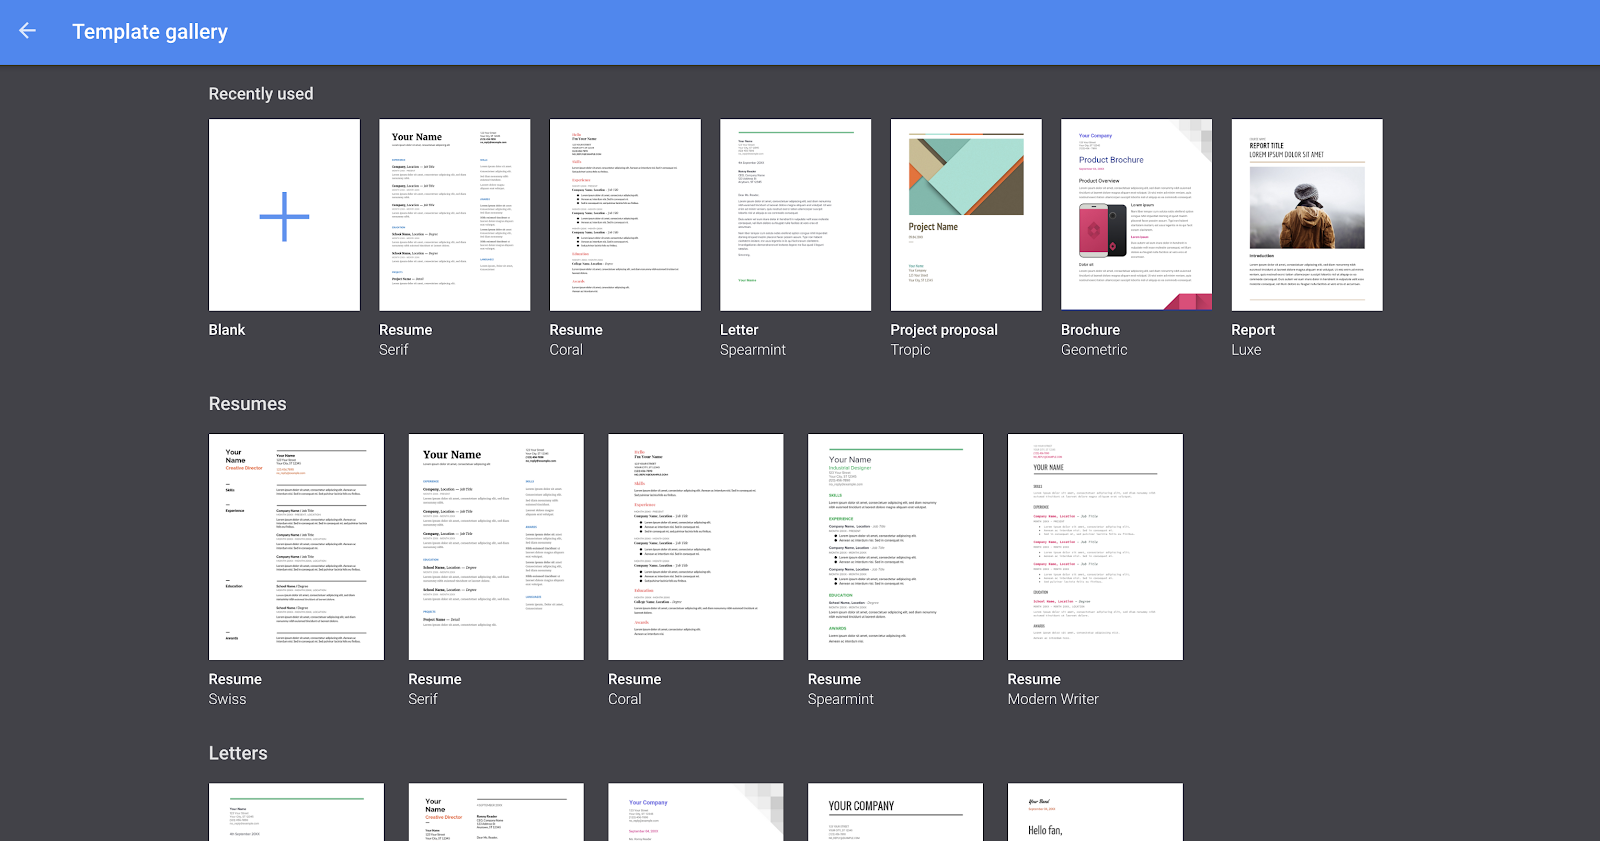 Here is where you could see the available templates that Google Docs offer.